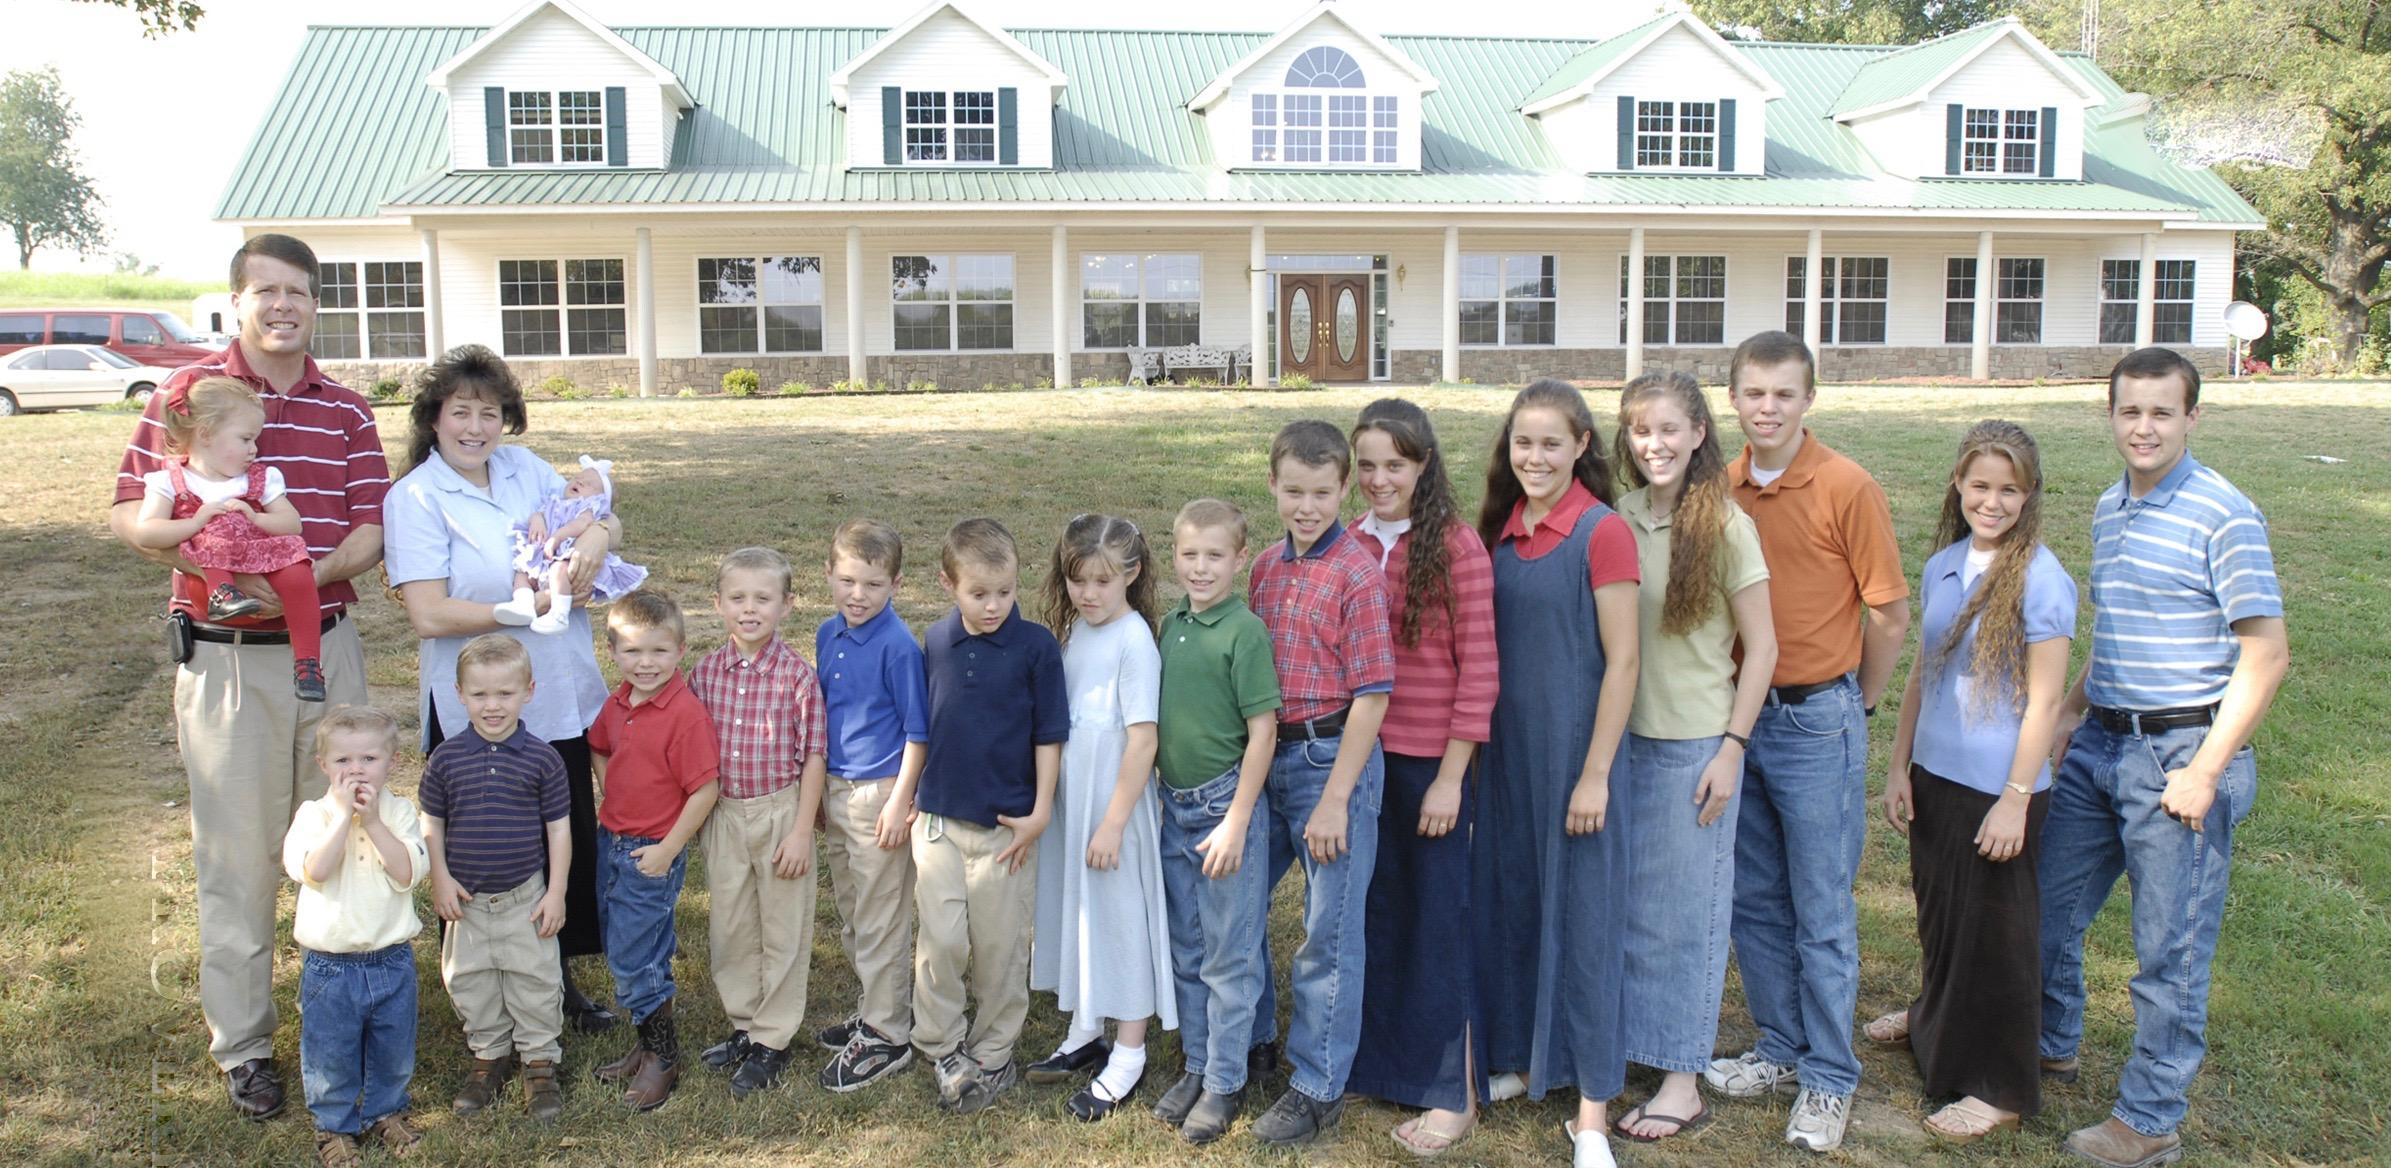 Joy-Anna Duggar Forsyth with her parents and siblings